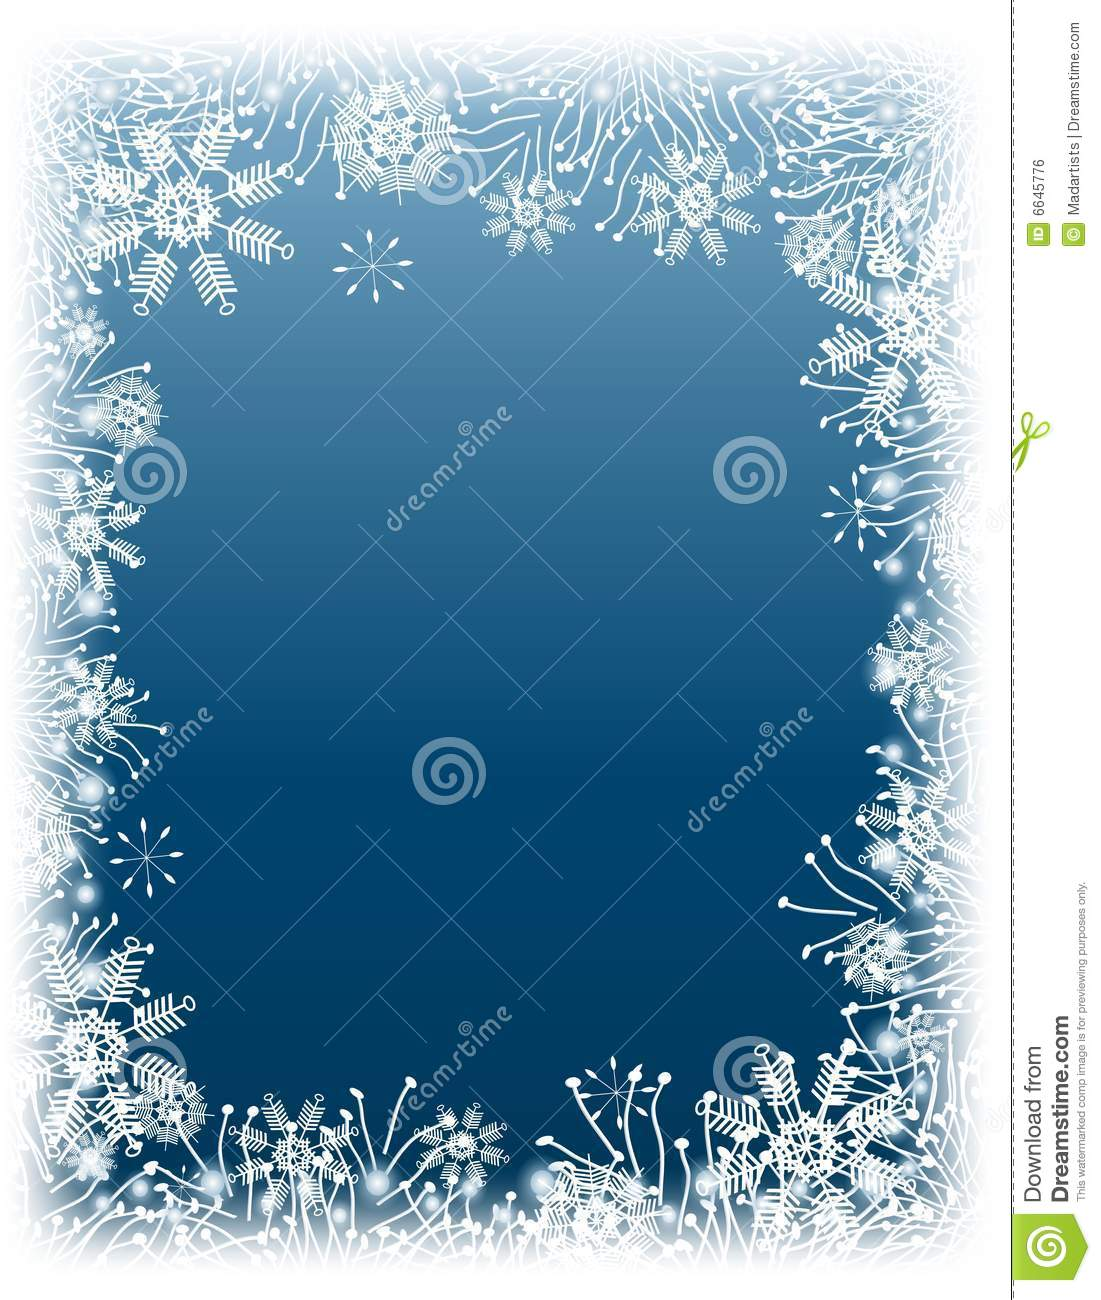 ... gradietn background decorated with a white winter snowflake border